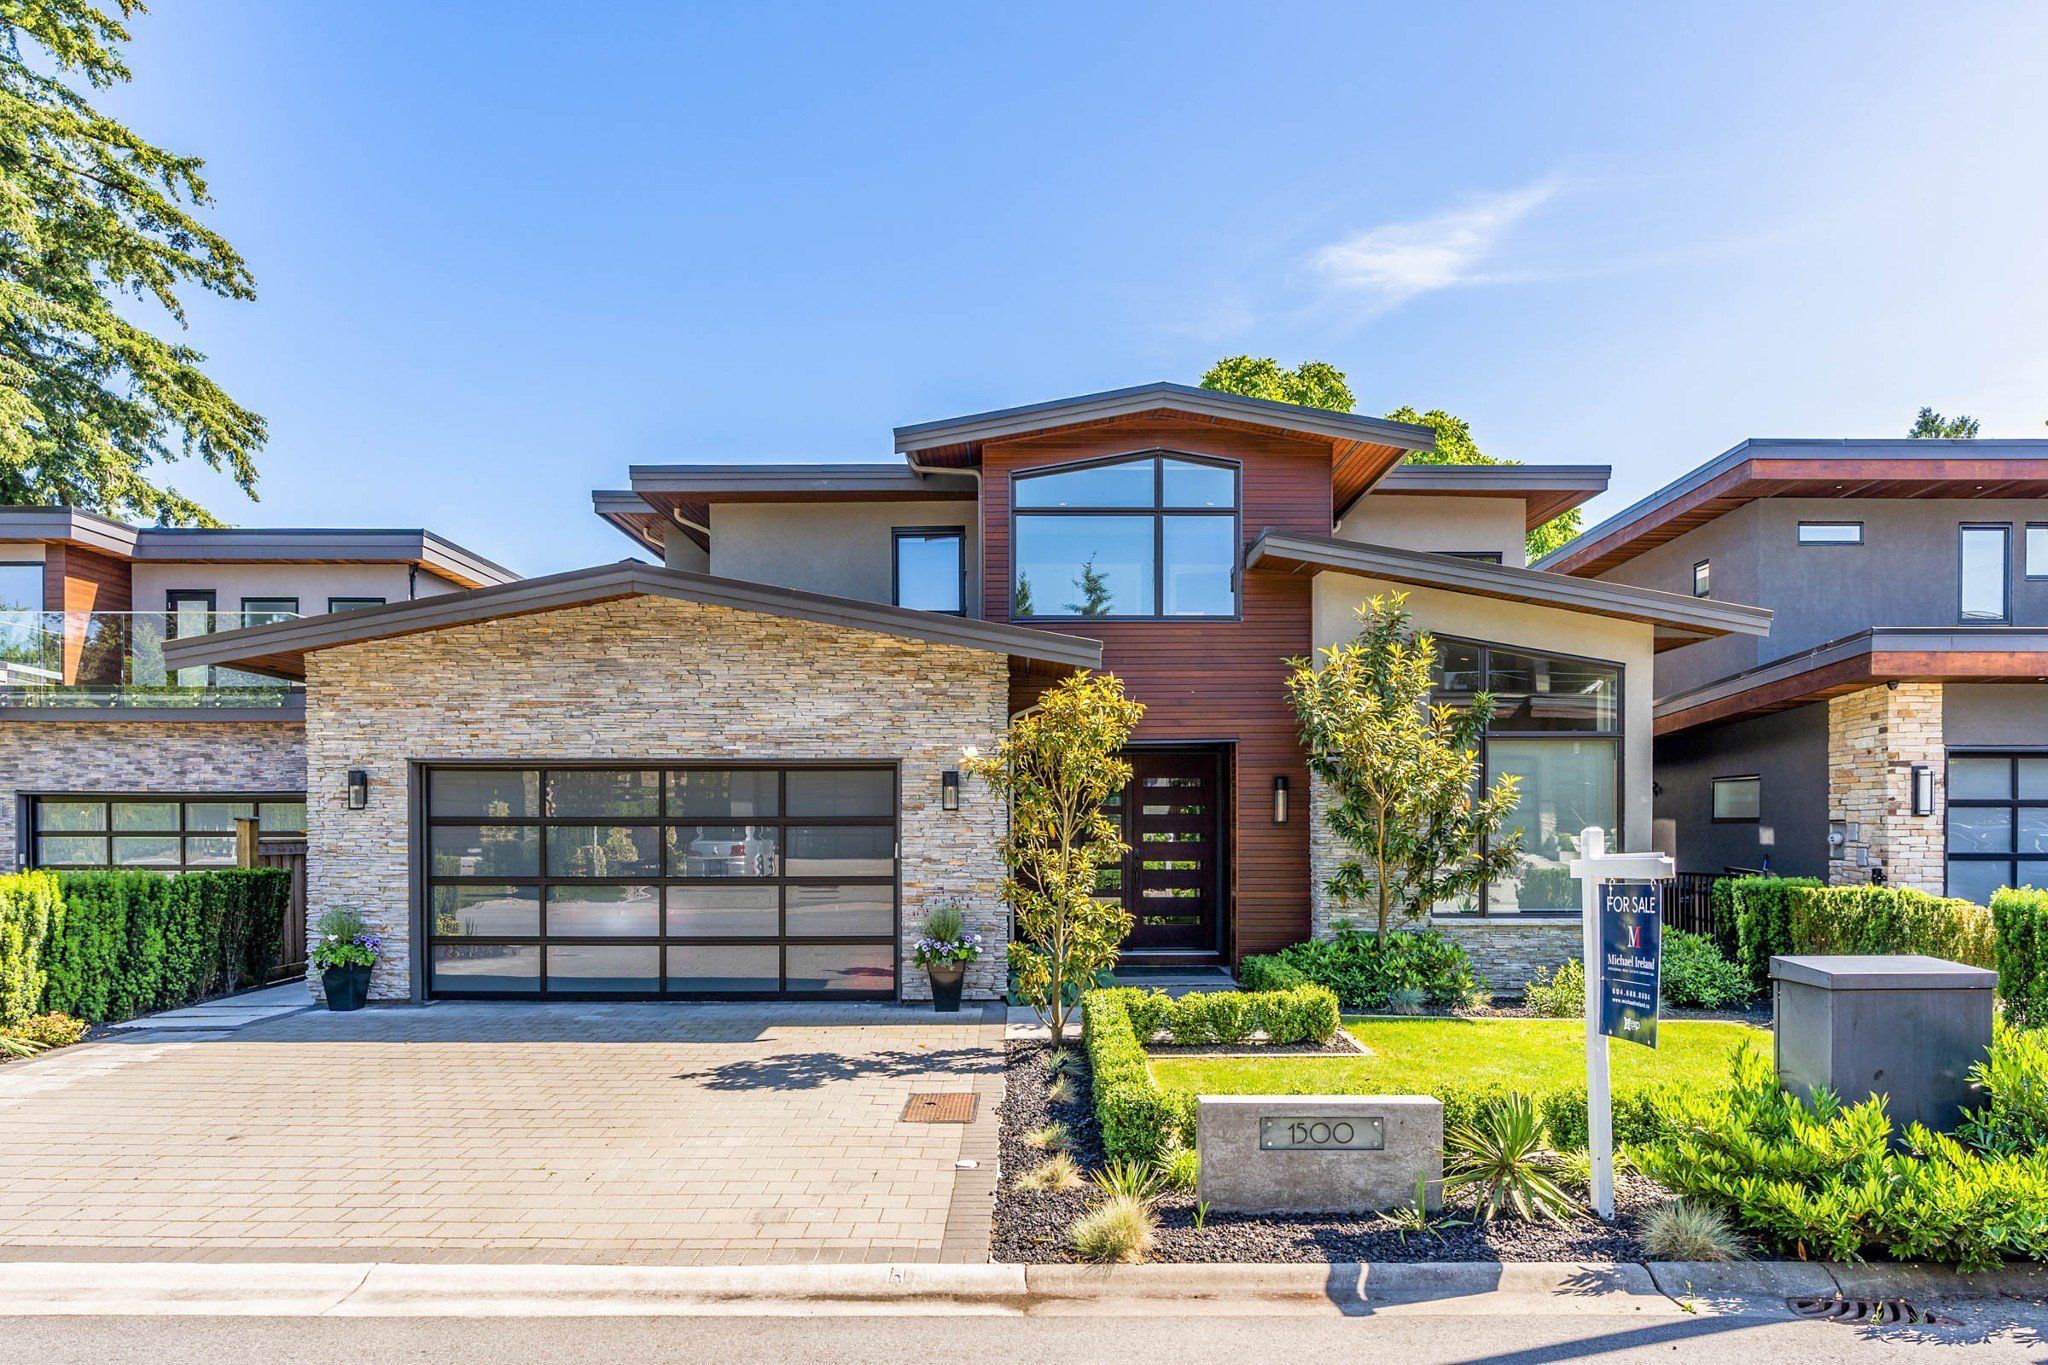 """Main Photo: 1500 BISHOP Road: White Rock House for sale in """"BISHOP HILL"""" (South Surrey White Rock)  : MLS®# R2465099"""